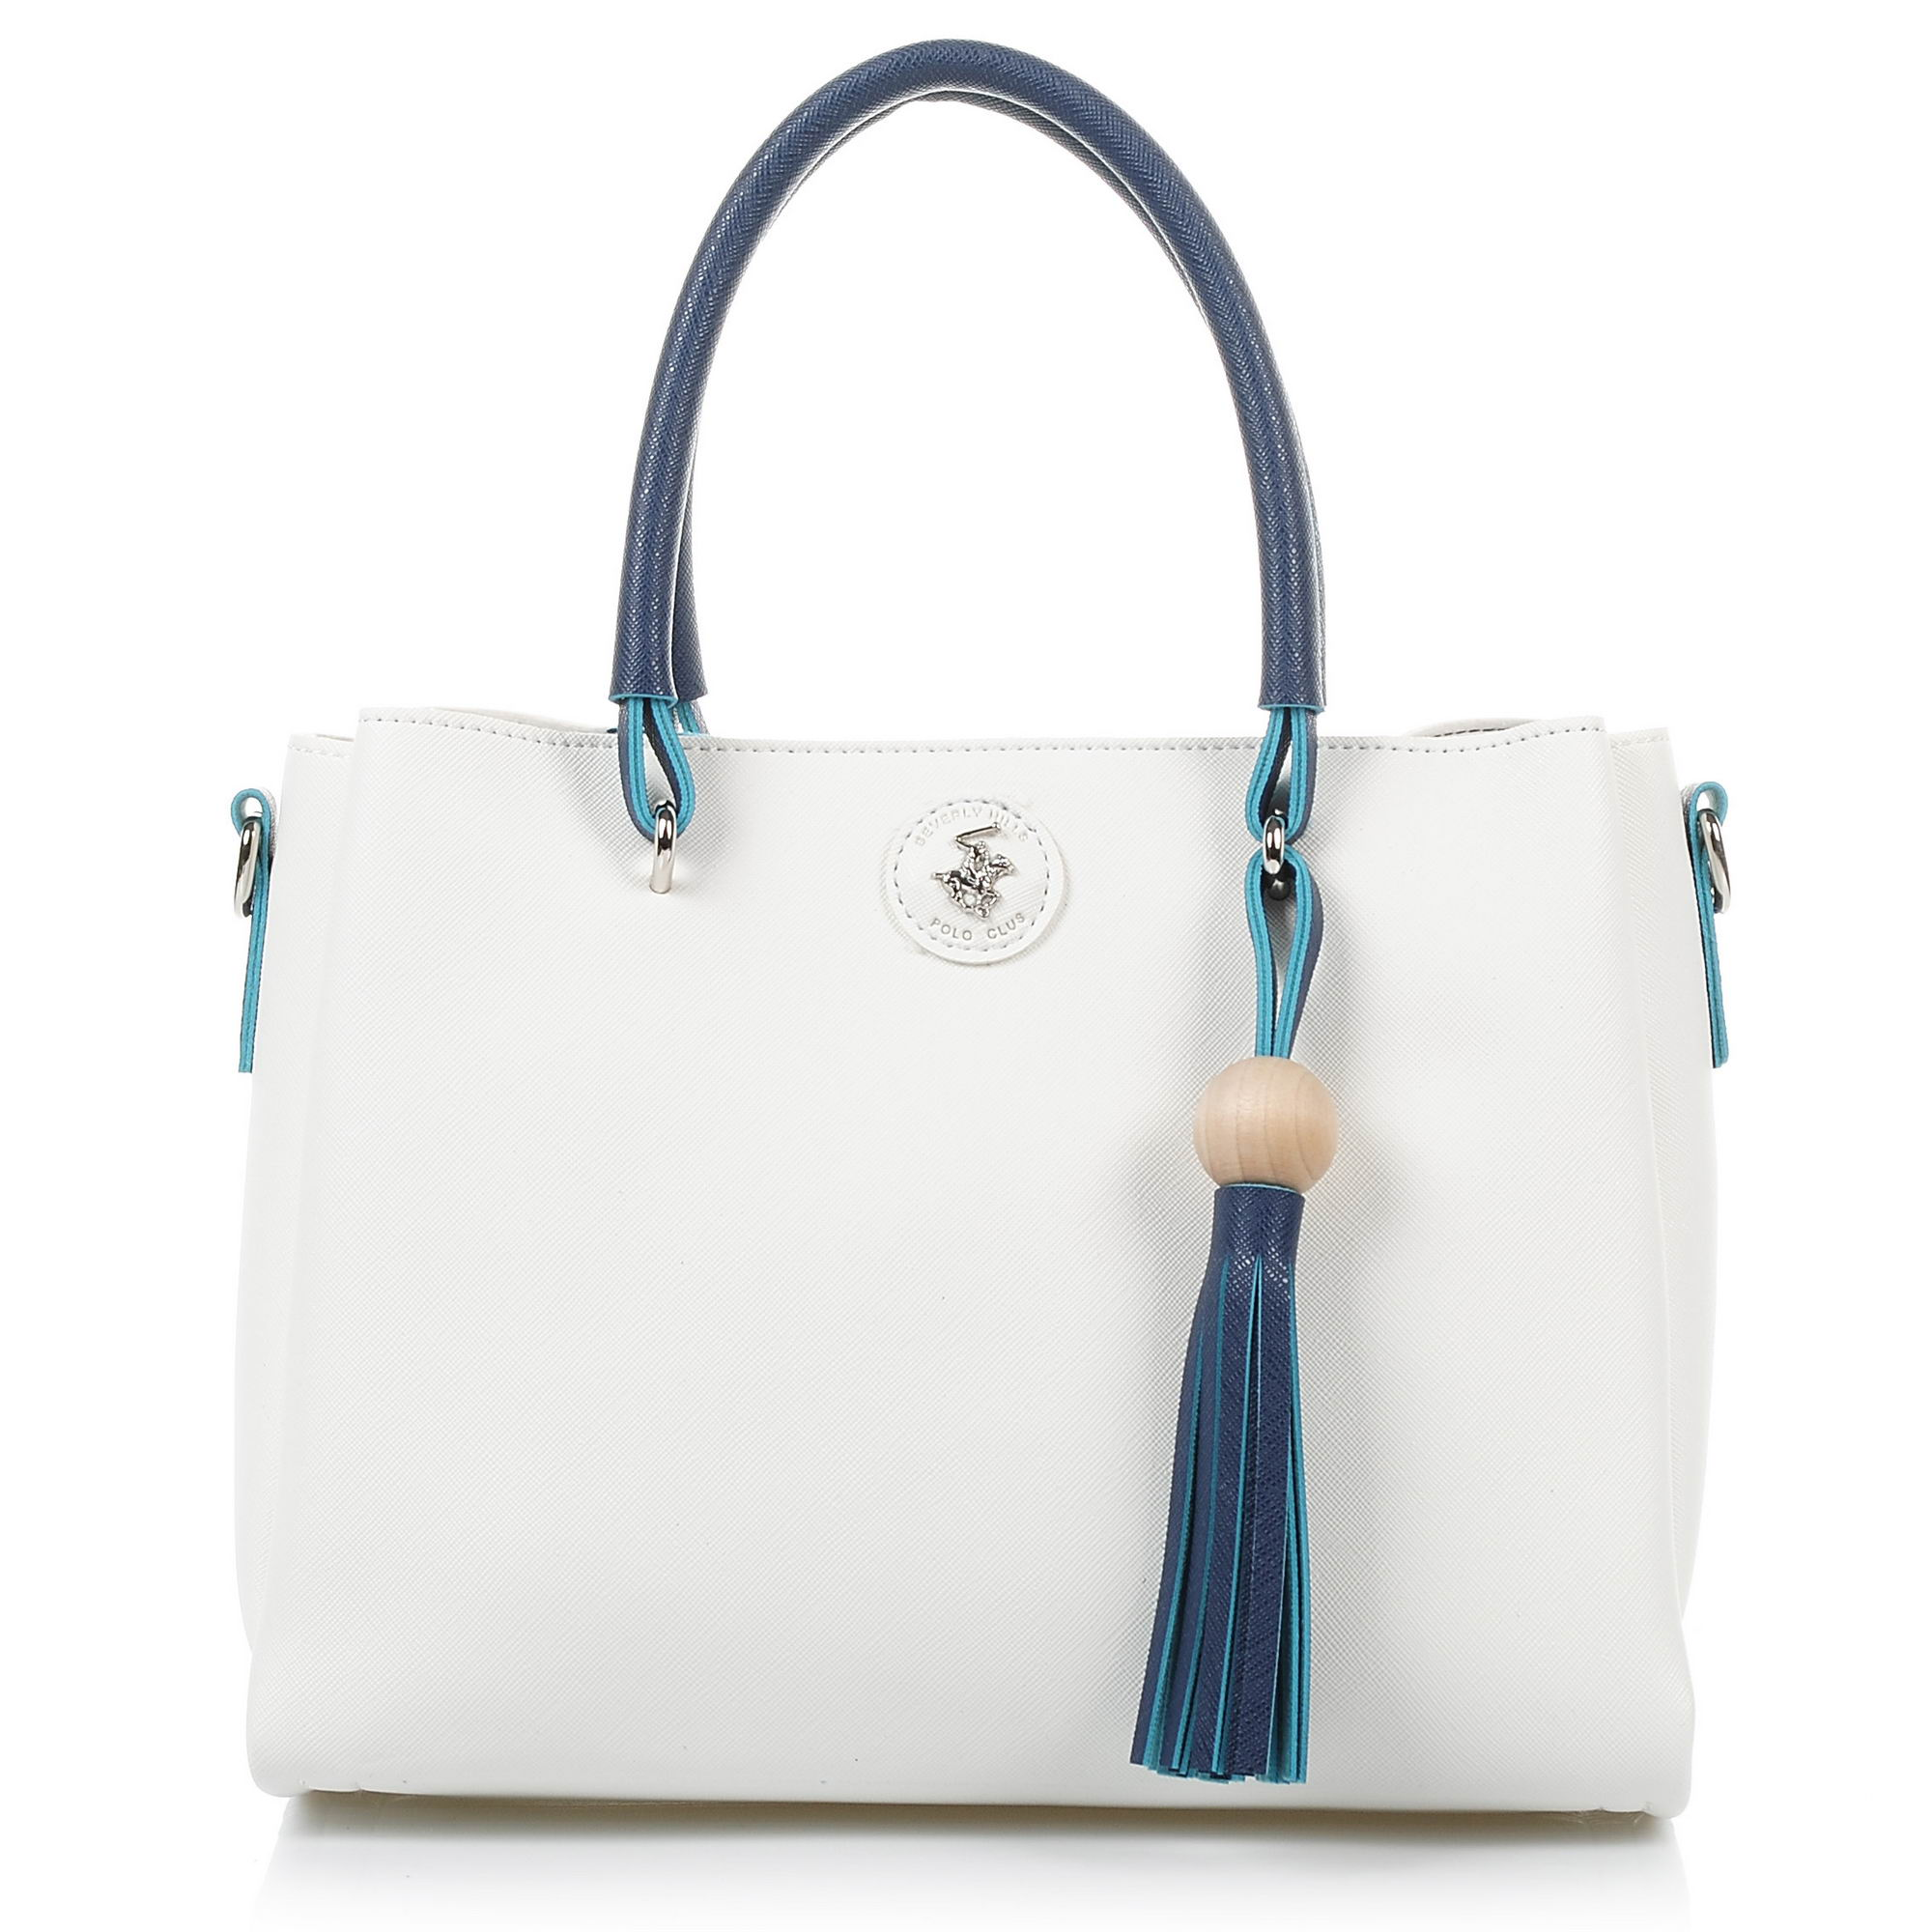 3559de474d0 ... Tote Τσάντα Beverly Hills Polo Club Borsa BH-1270